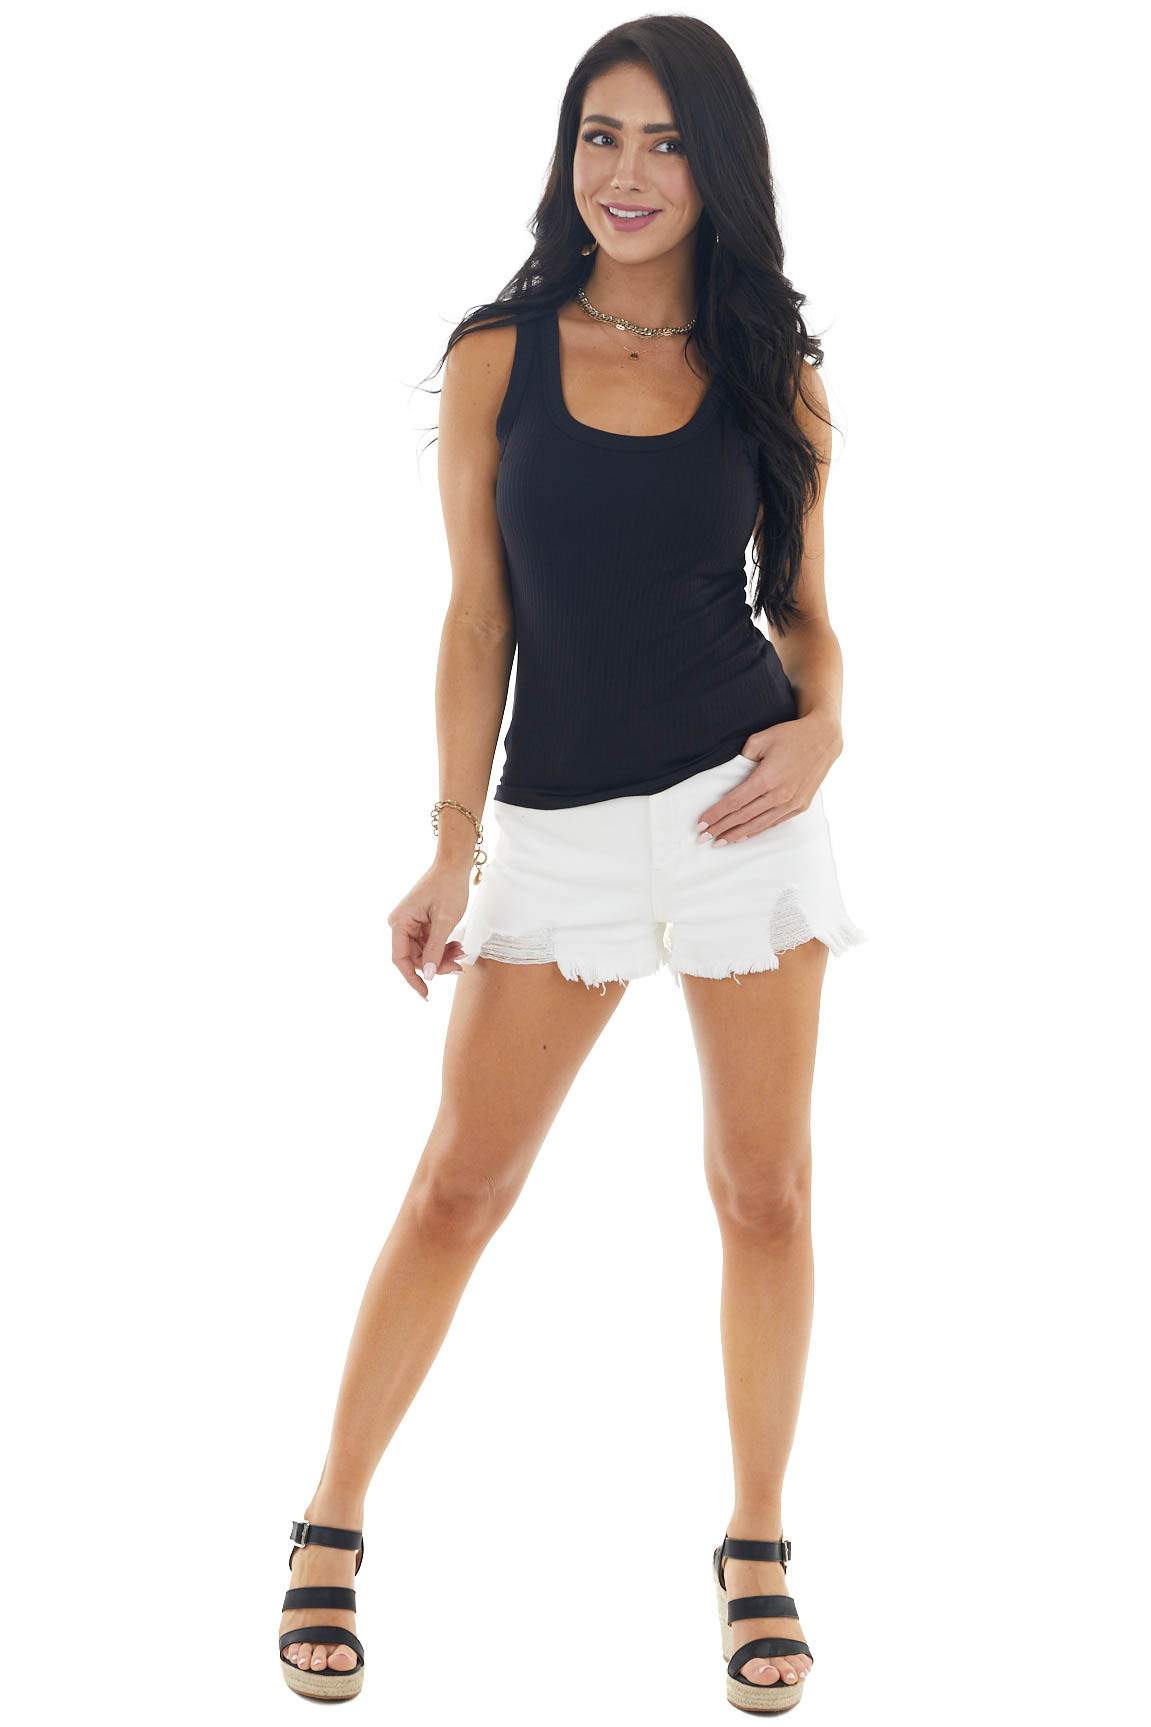 Black Stretchy Ribbed Knit Tank Top with Scoop Neck